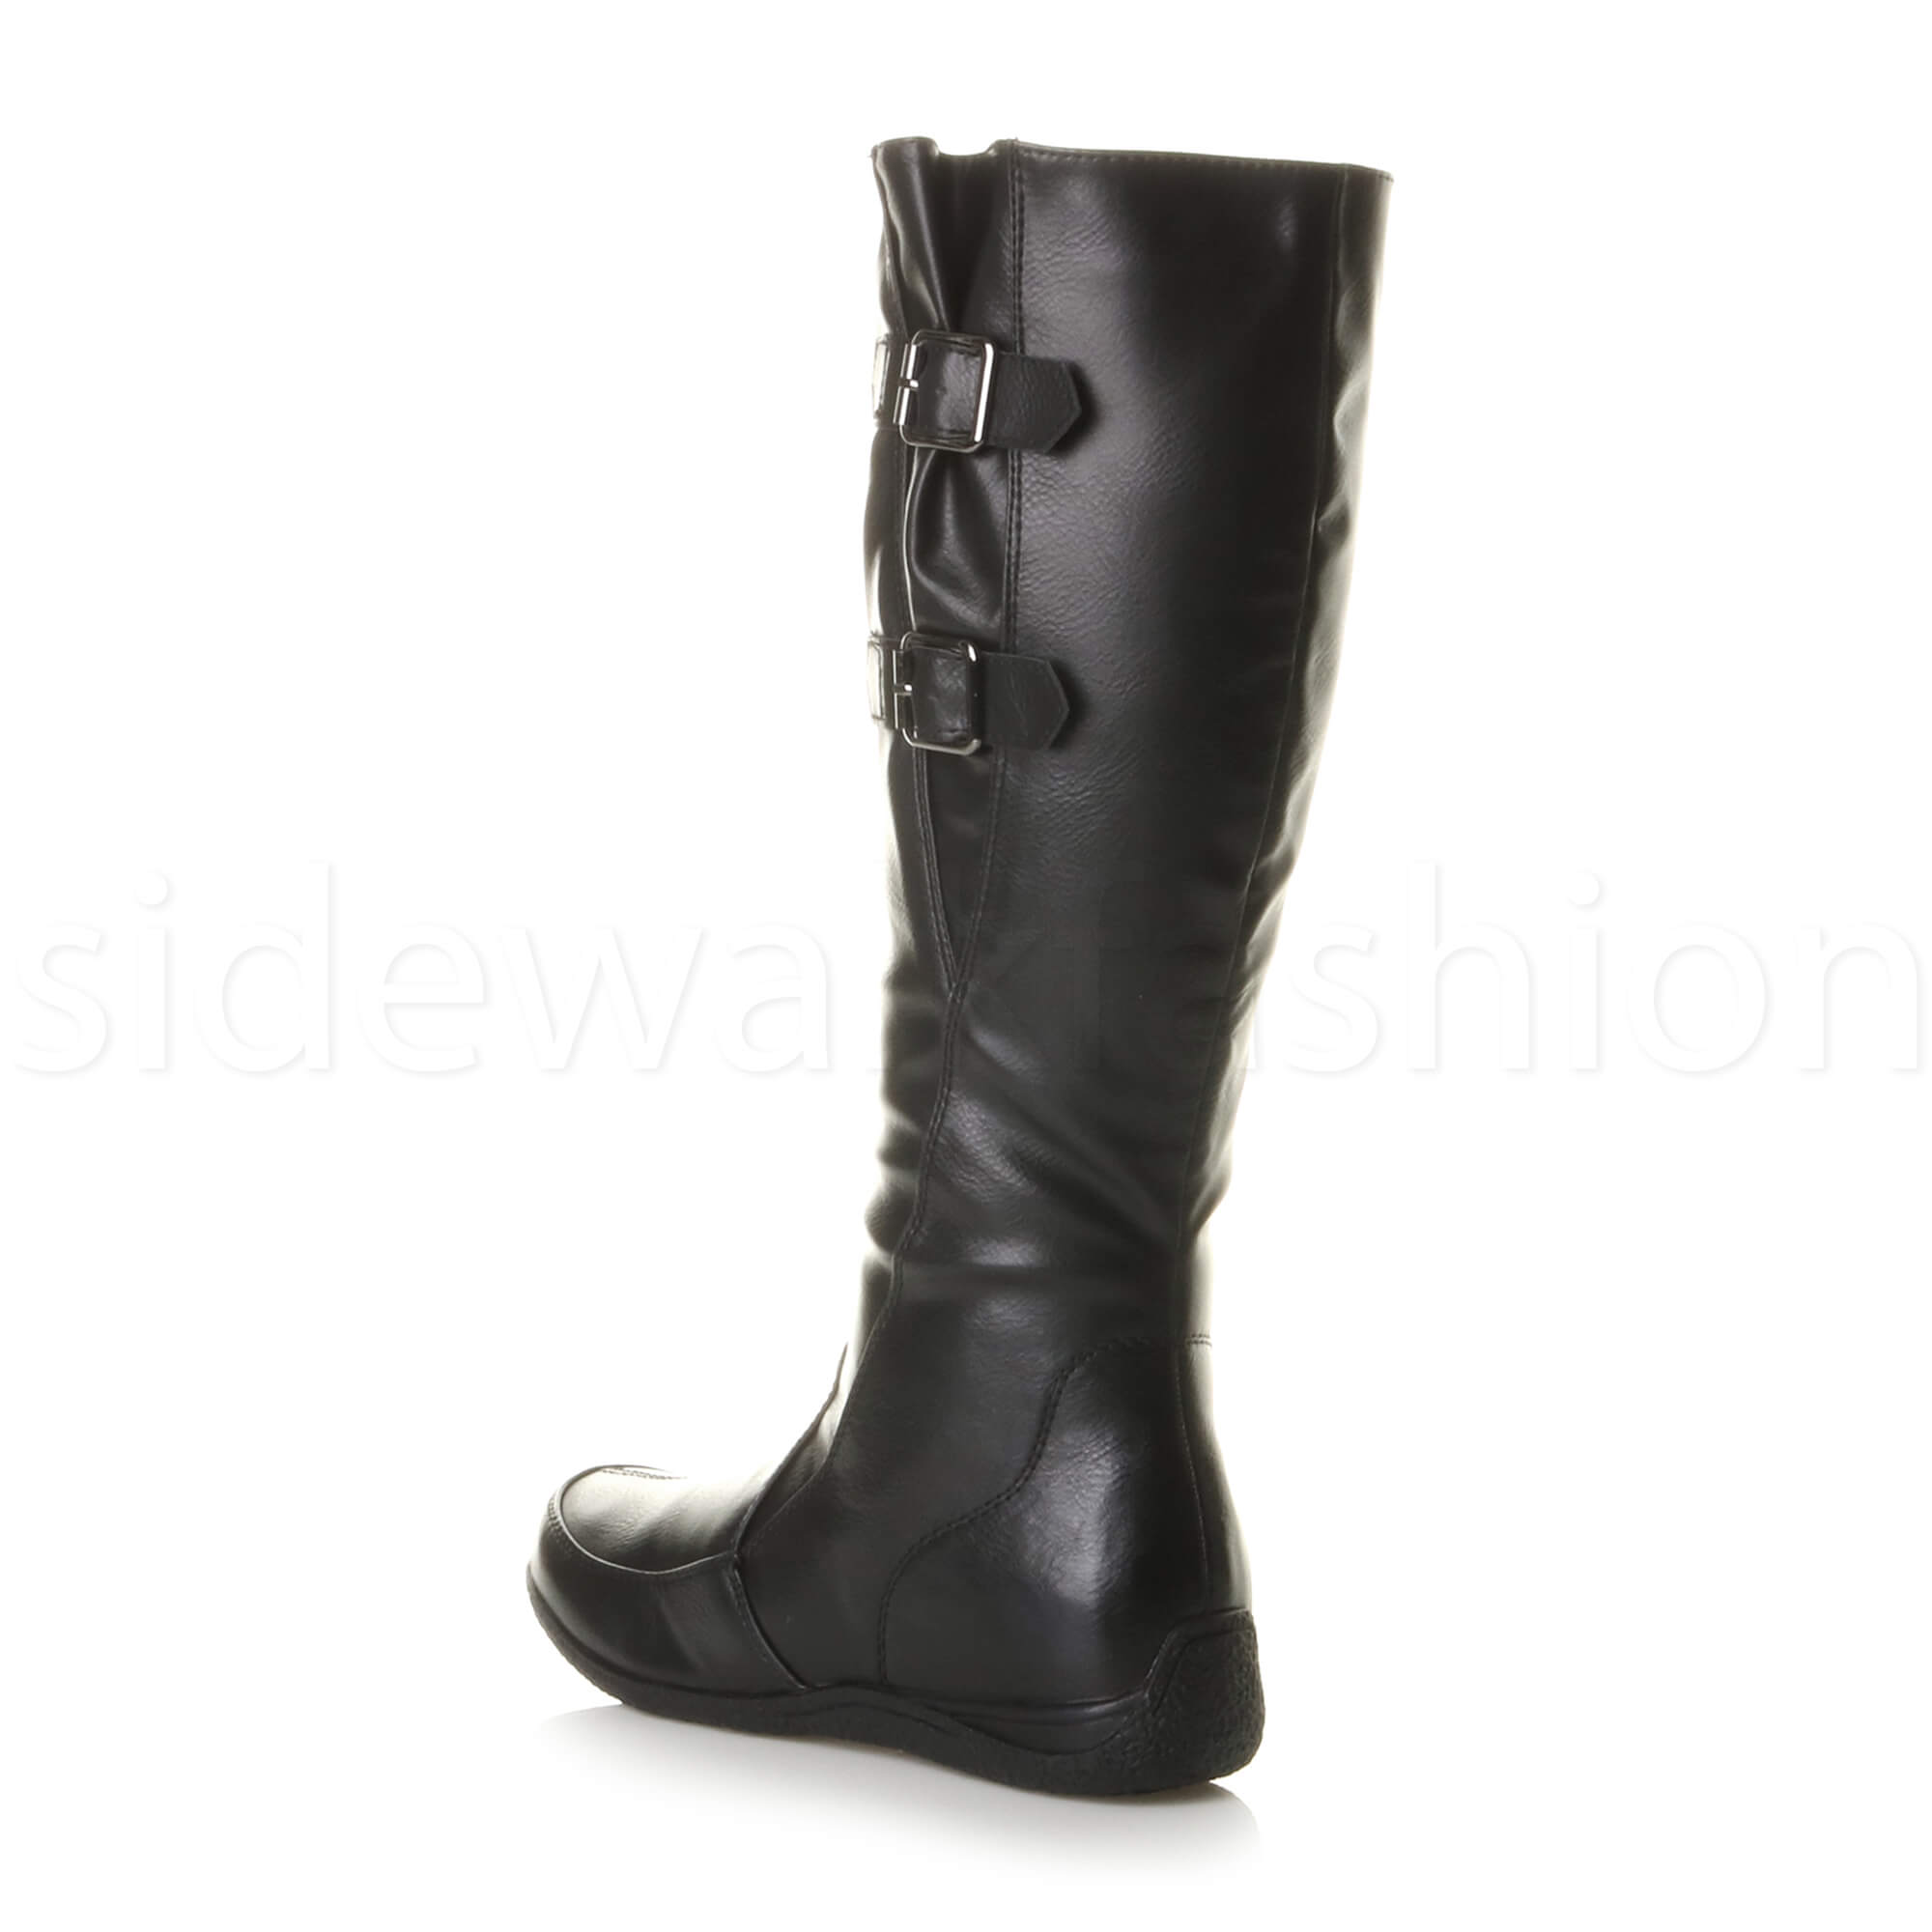 Womens-ladies-low-concealed-wedge-buckle-zip-casual-adjustable-calf-boots-size